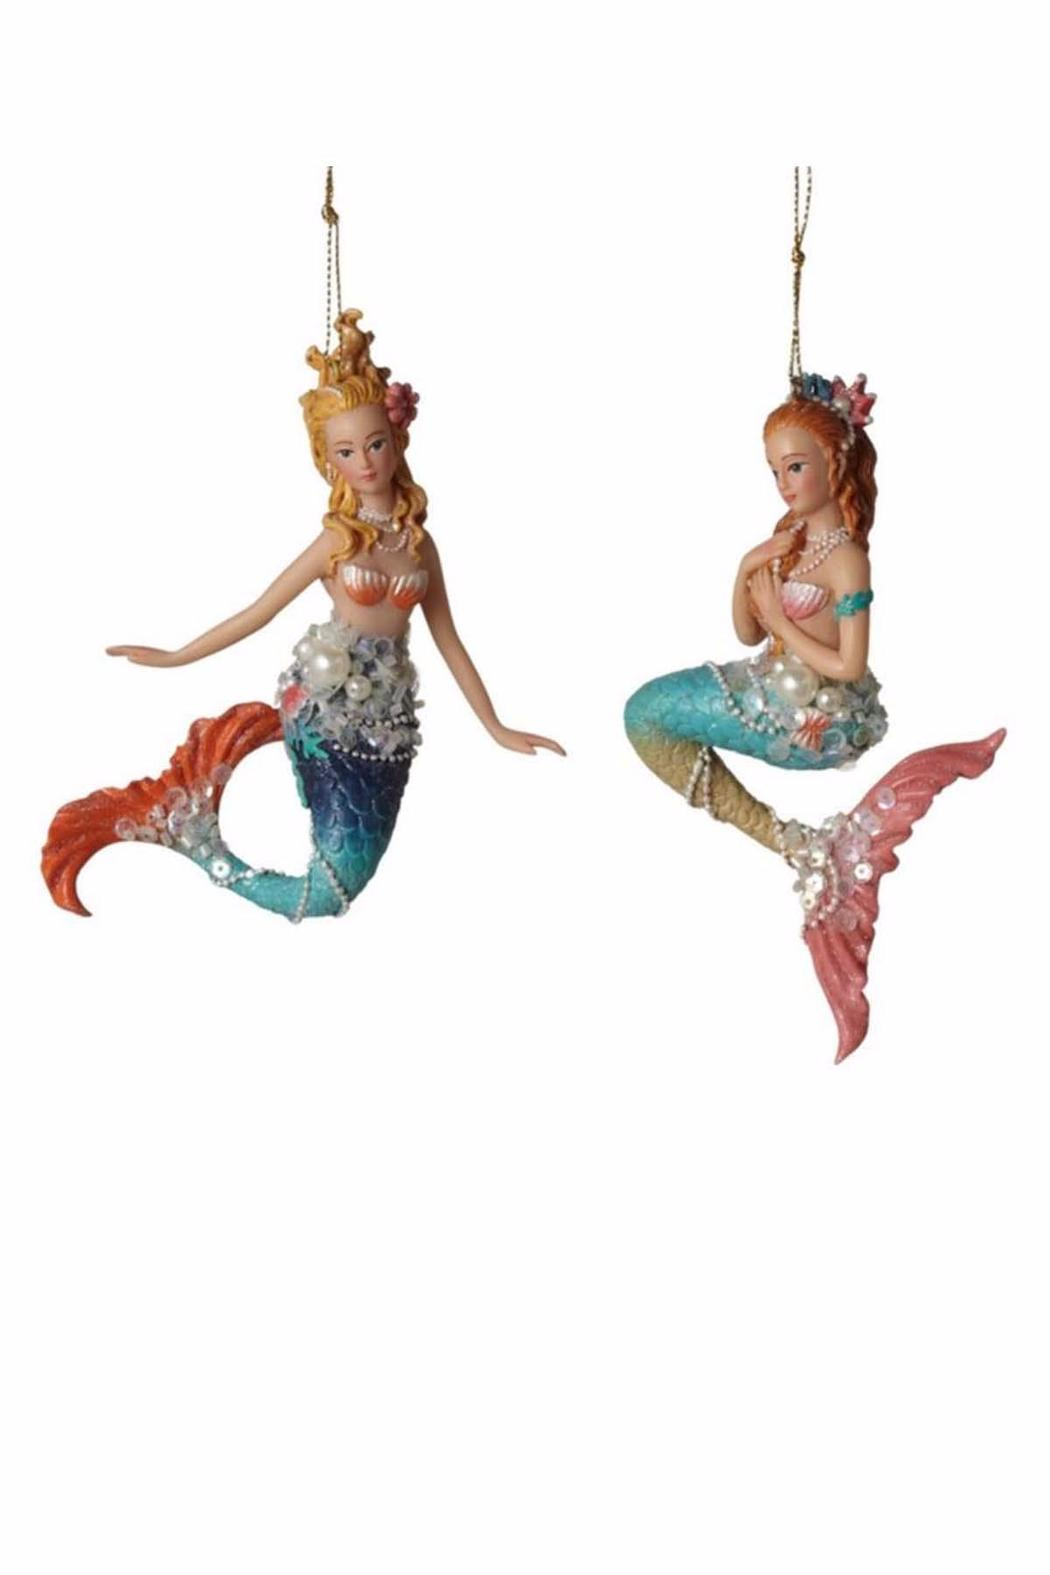 Midwest Cbk Home Decor Midwest Cbk Sequin Mermaid Ornaments From Alabama By